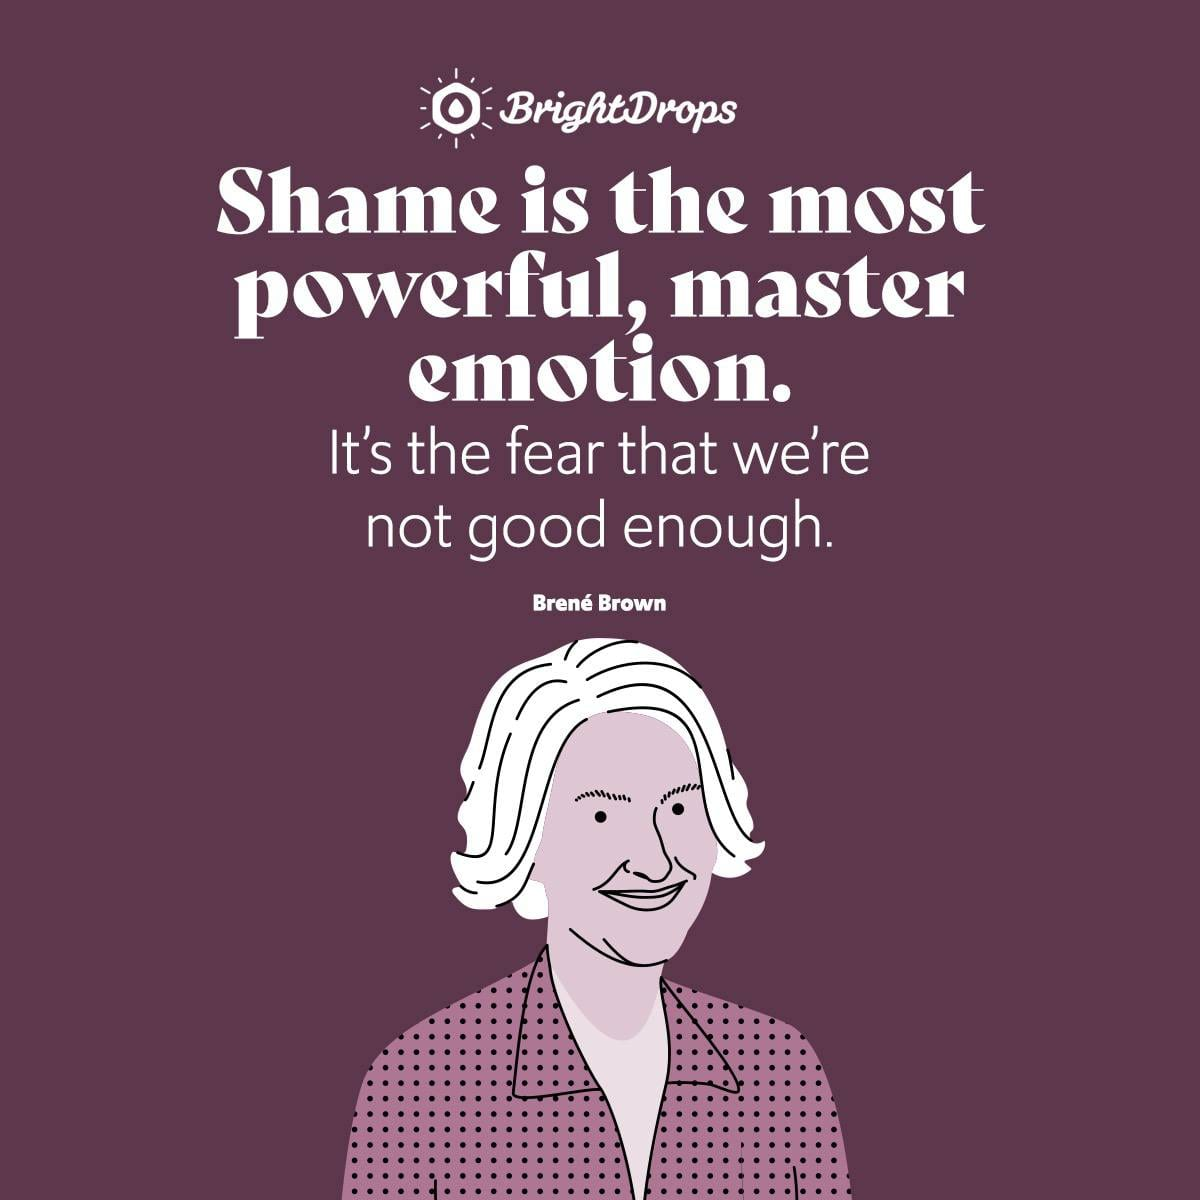 Shame is the most powerful, master emotion. It's the fear that we're not good enough. - Brene Brown